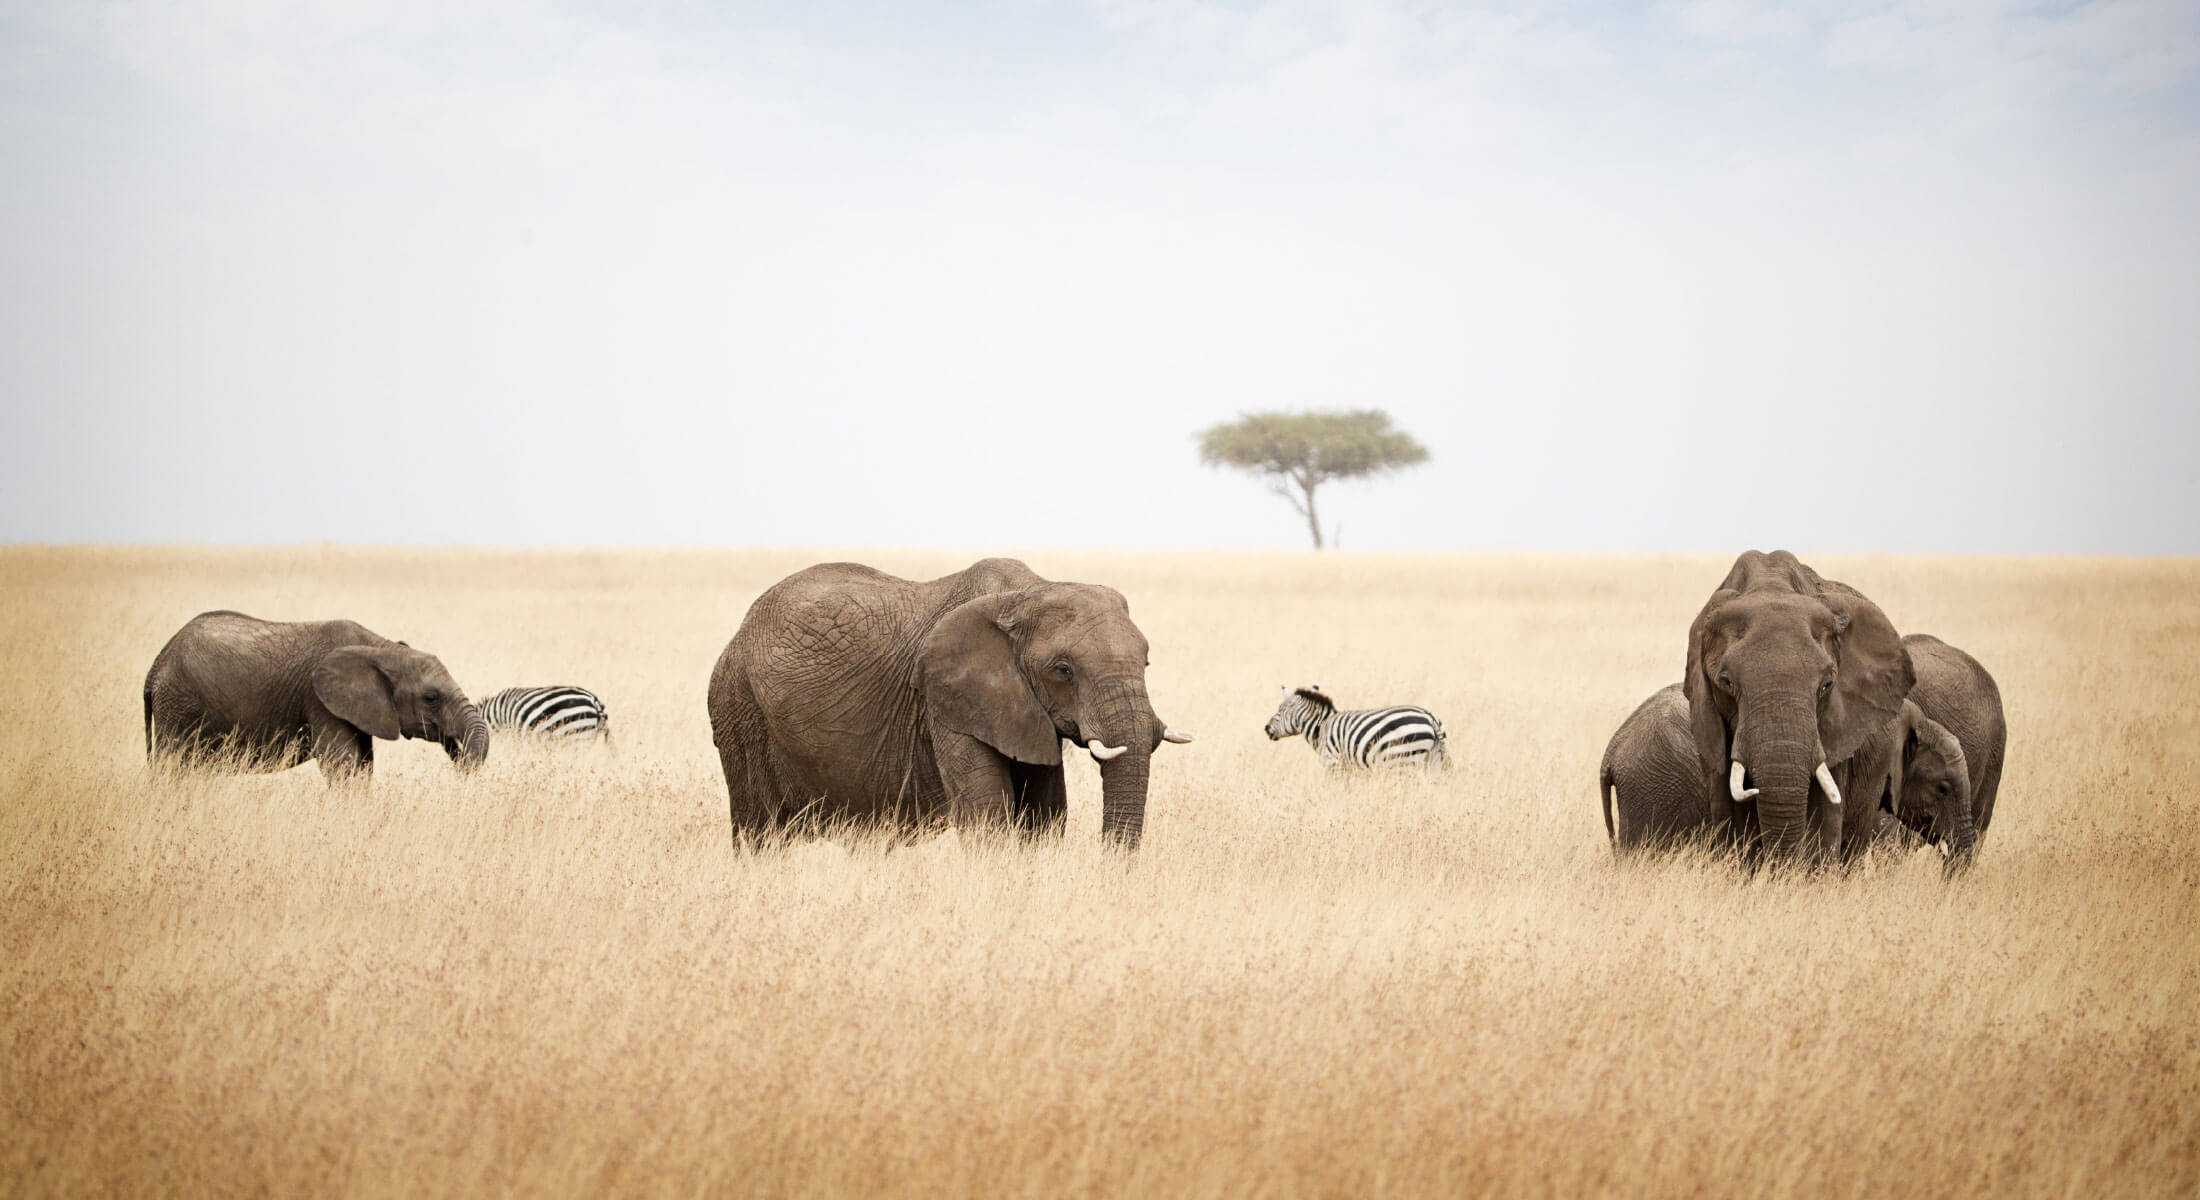 African elephants and zebras in tall grass